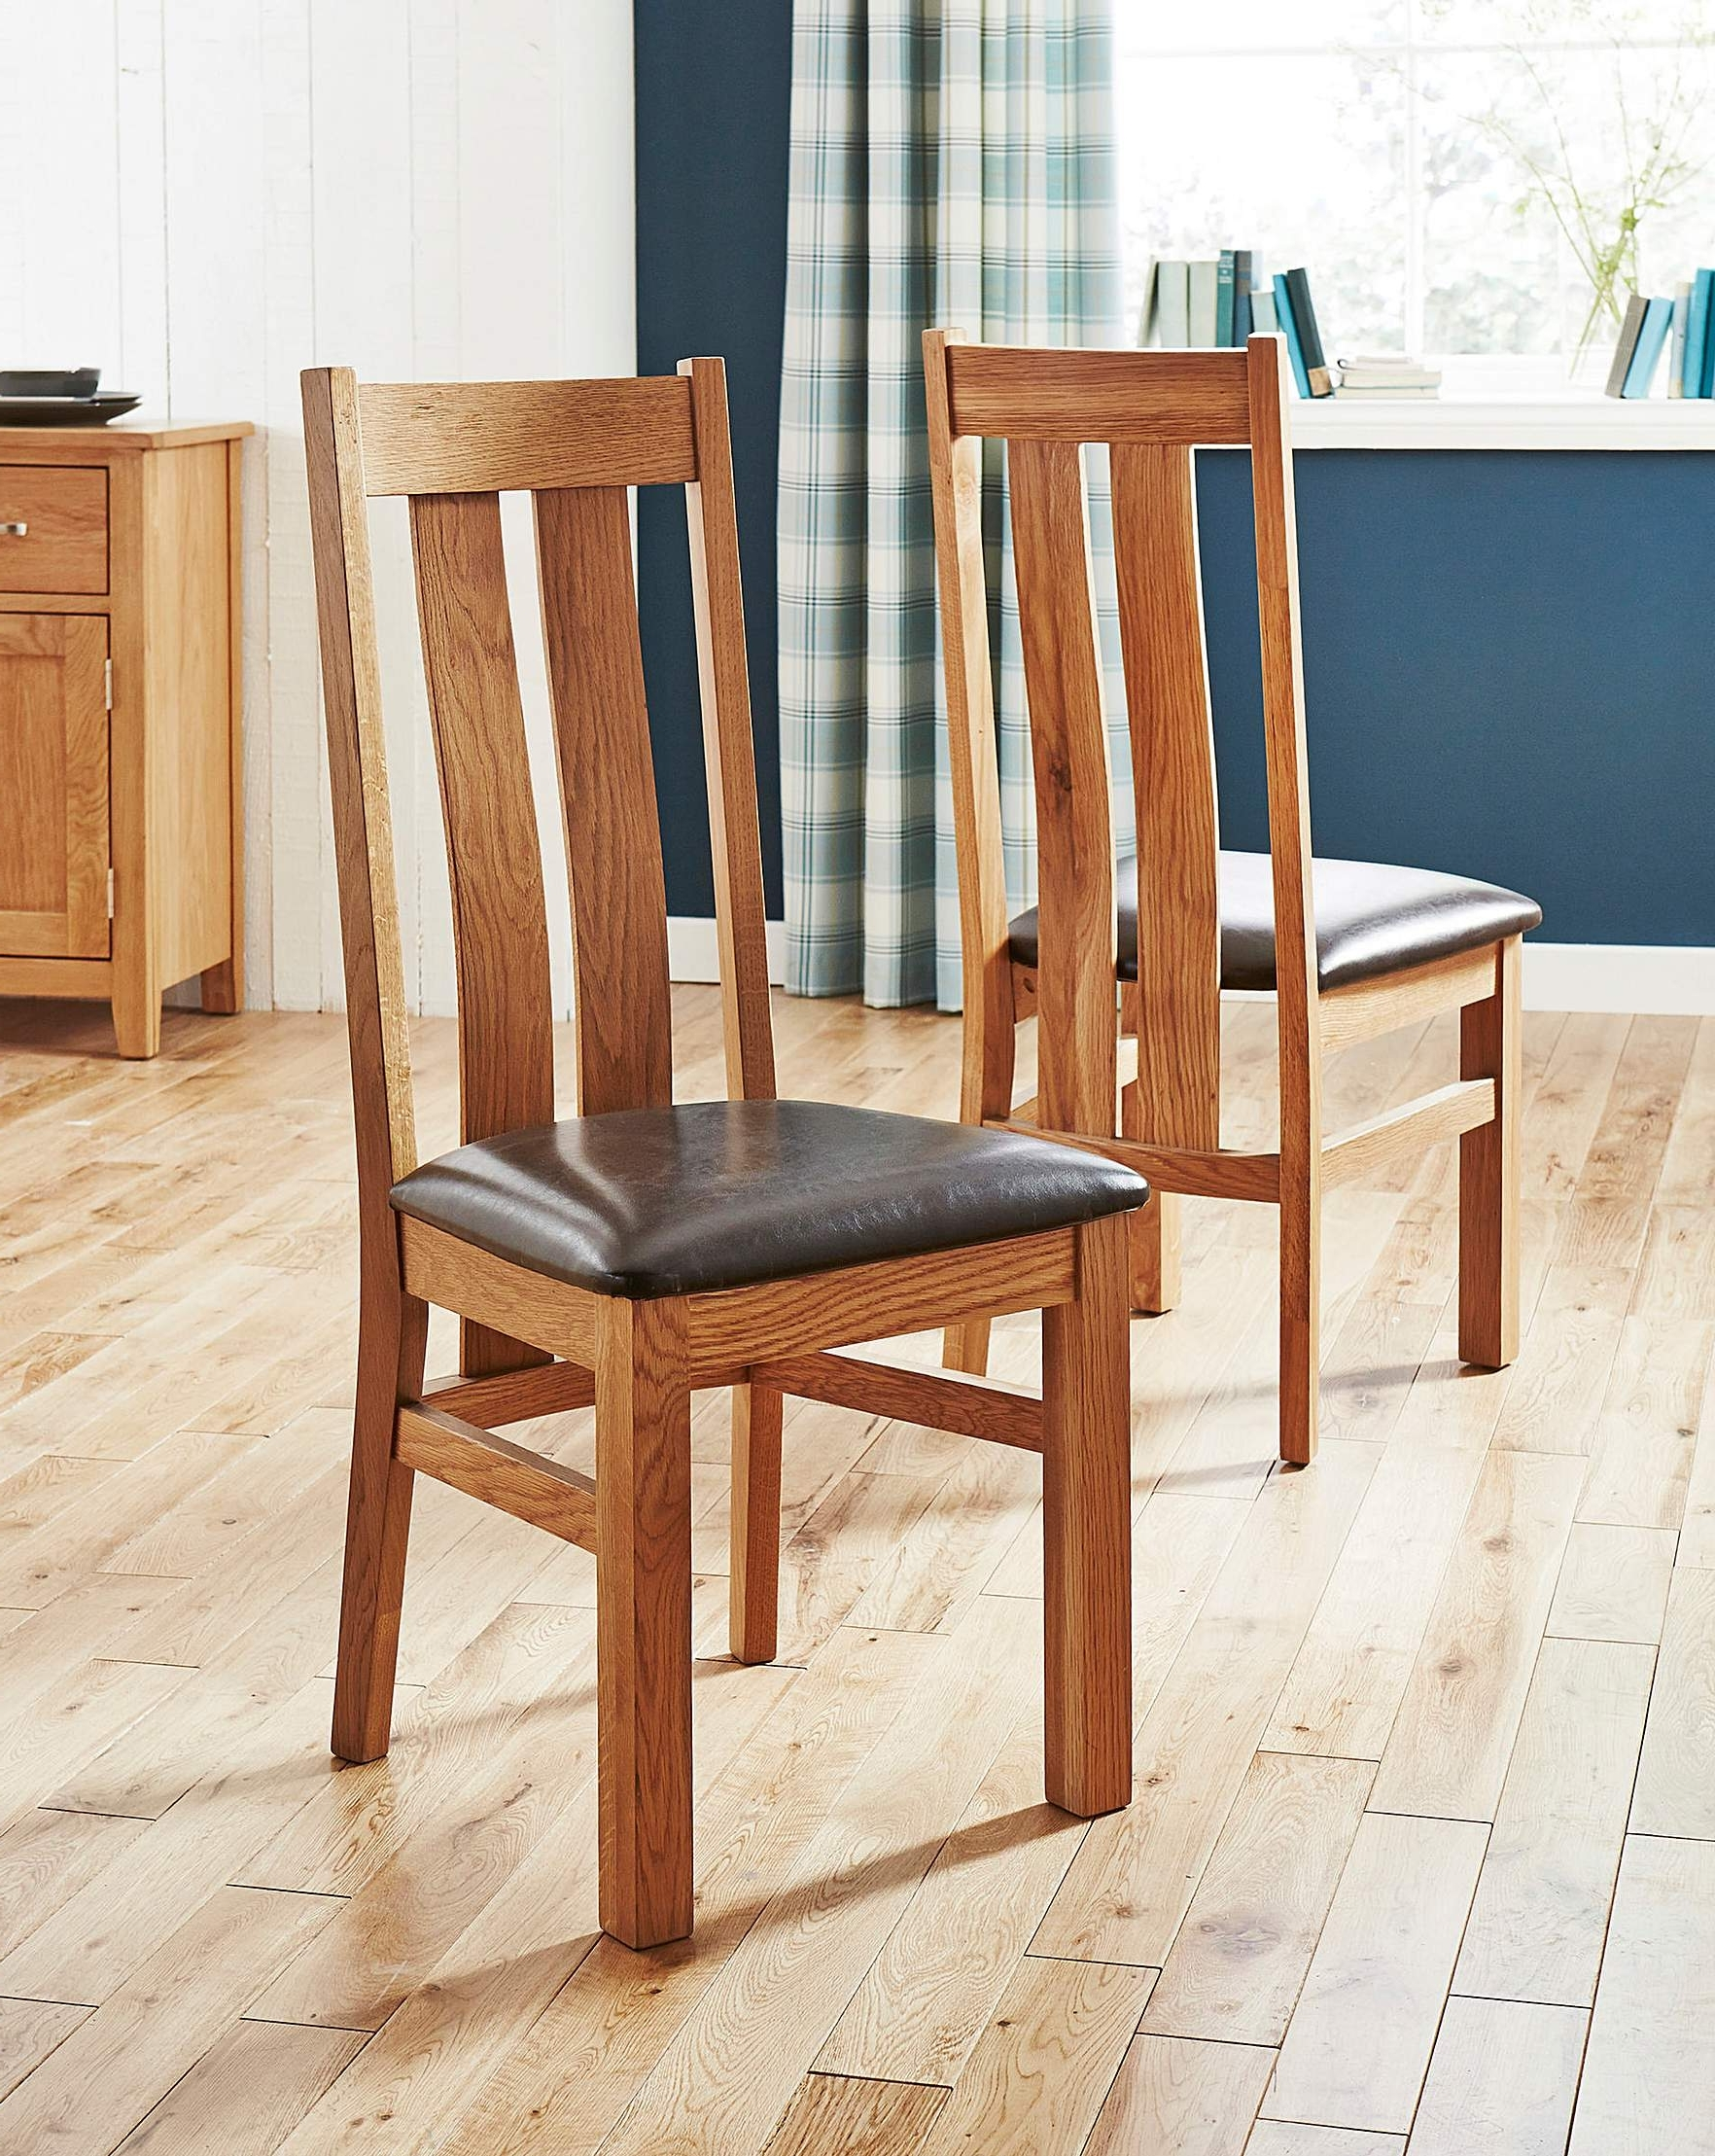 Home Beauty & Gift Shop Intended For Chester Dining Chairs (Gallery 9 of 25)